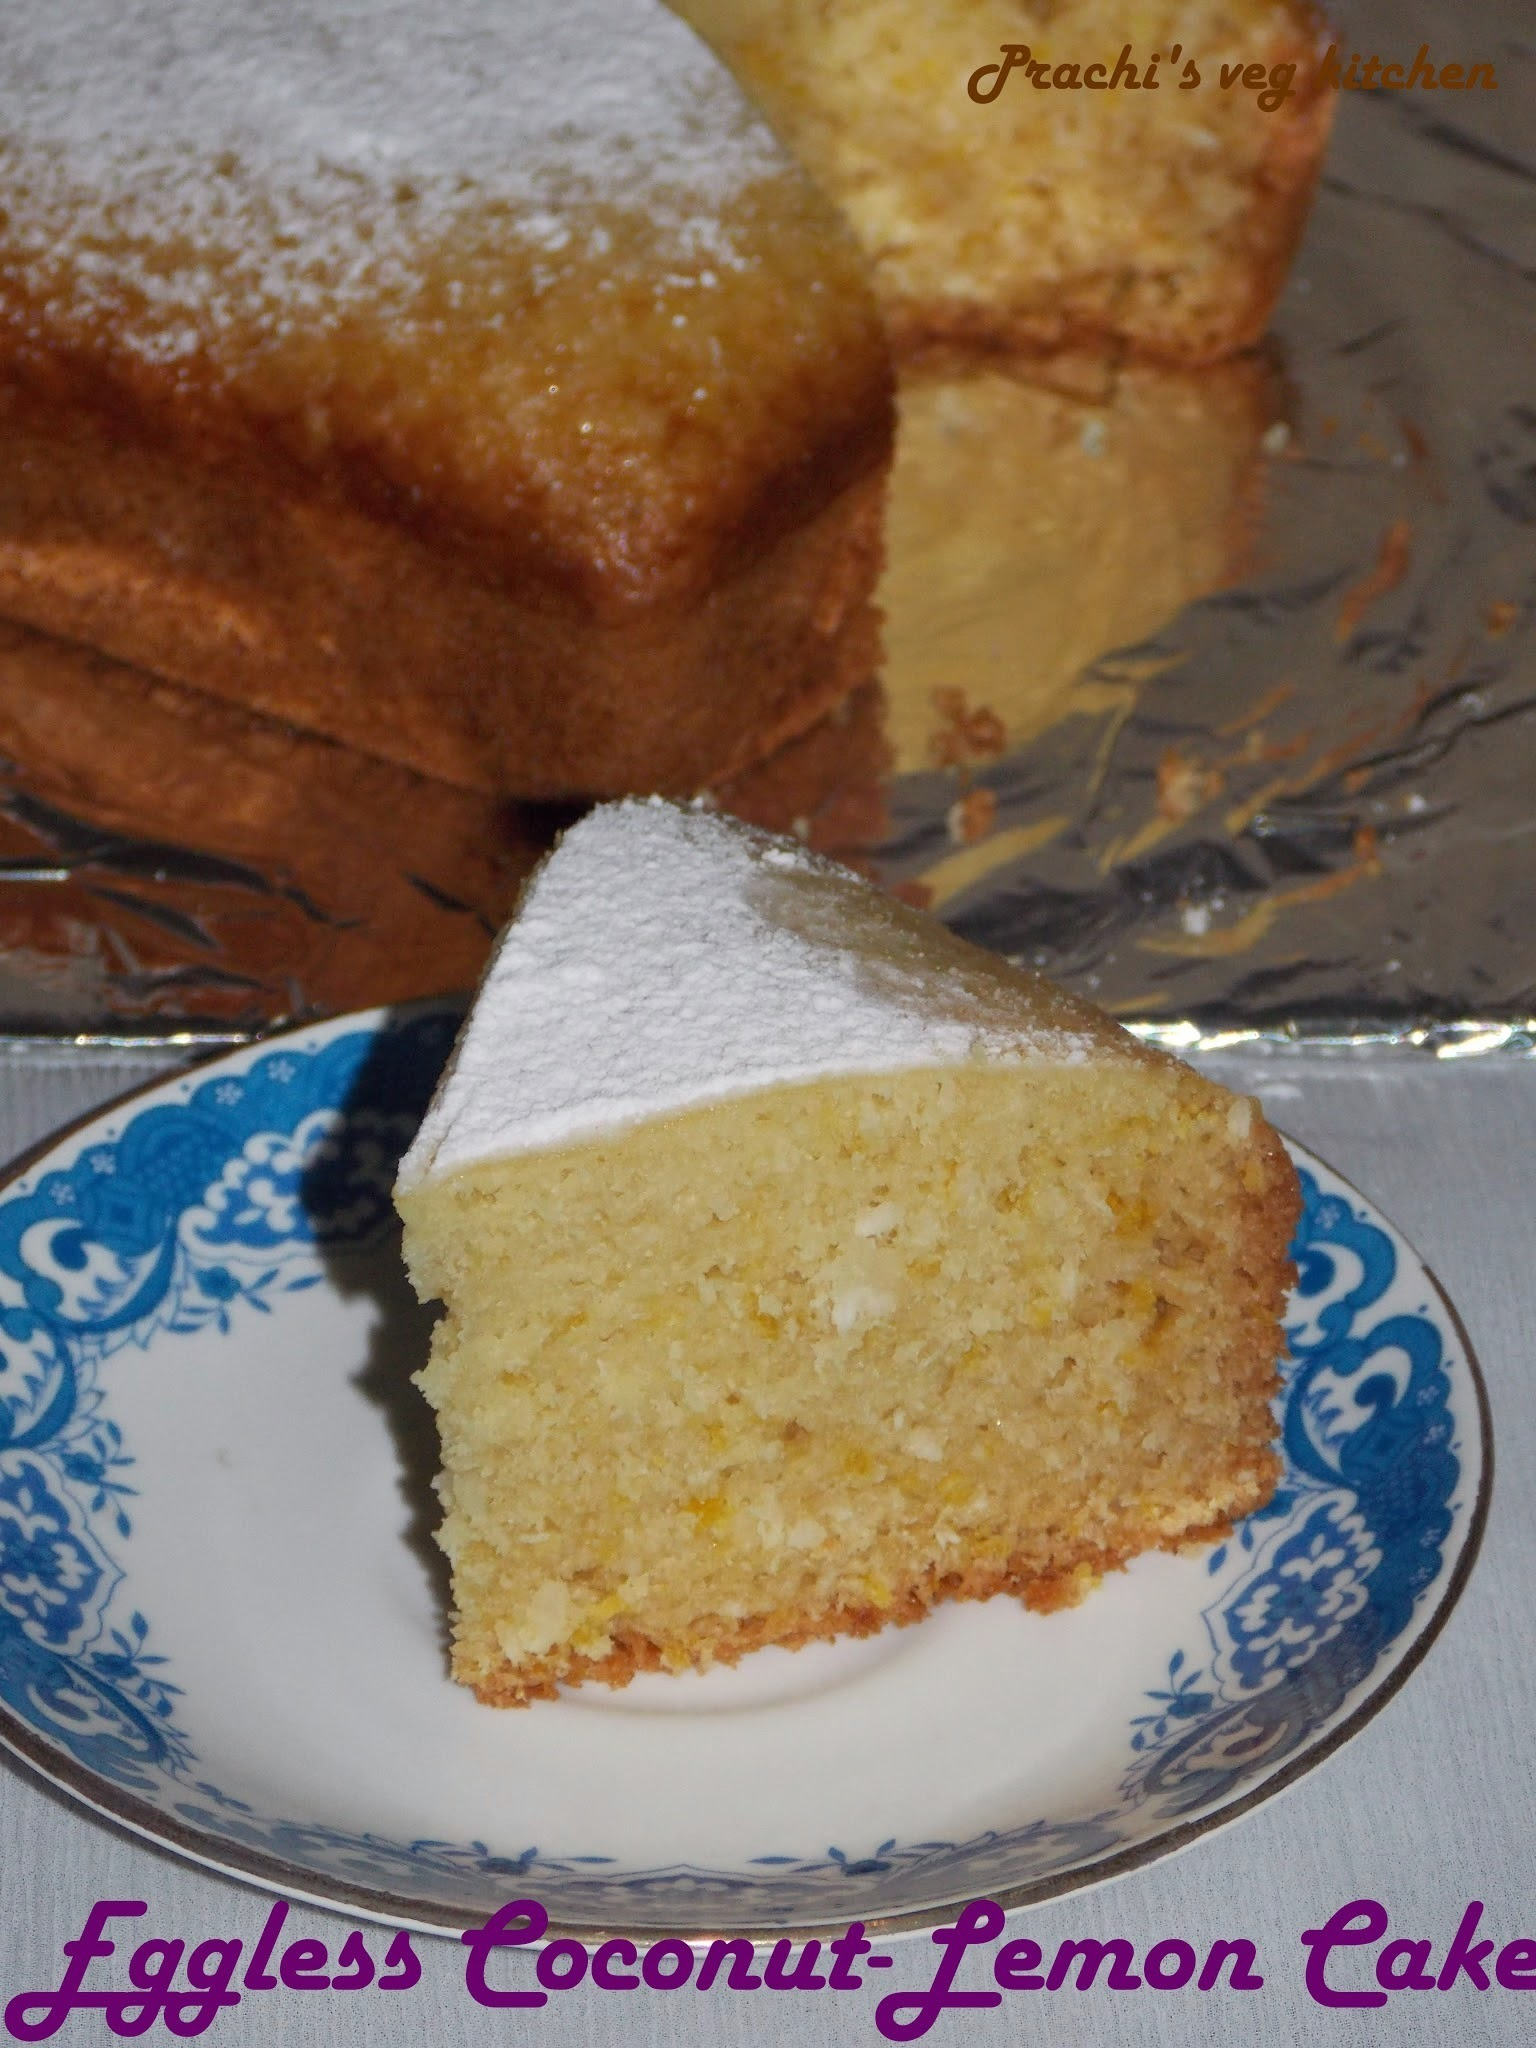 Eggless Coconut-lemon Cake No butter, No oven